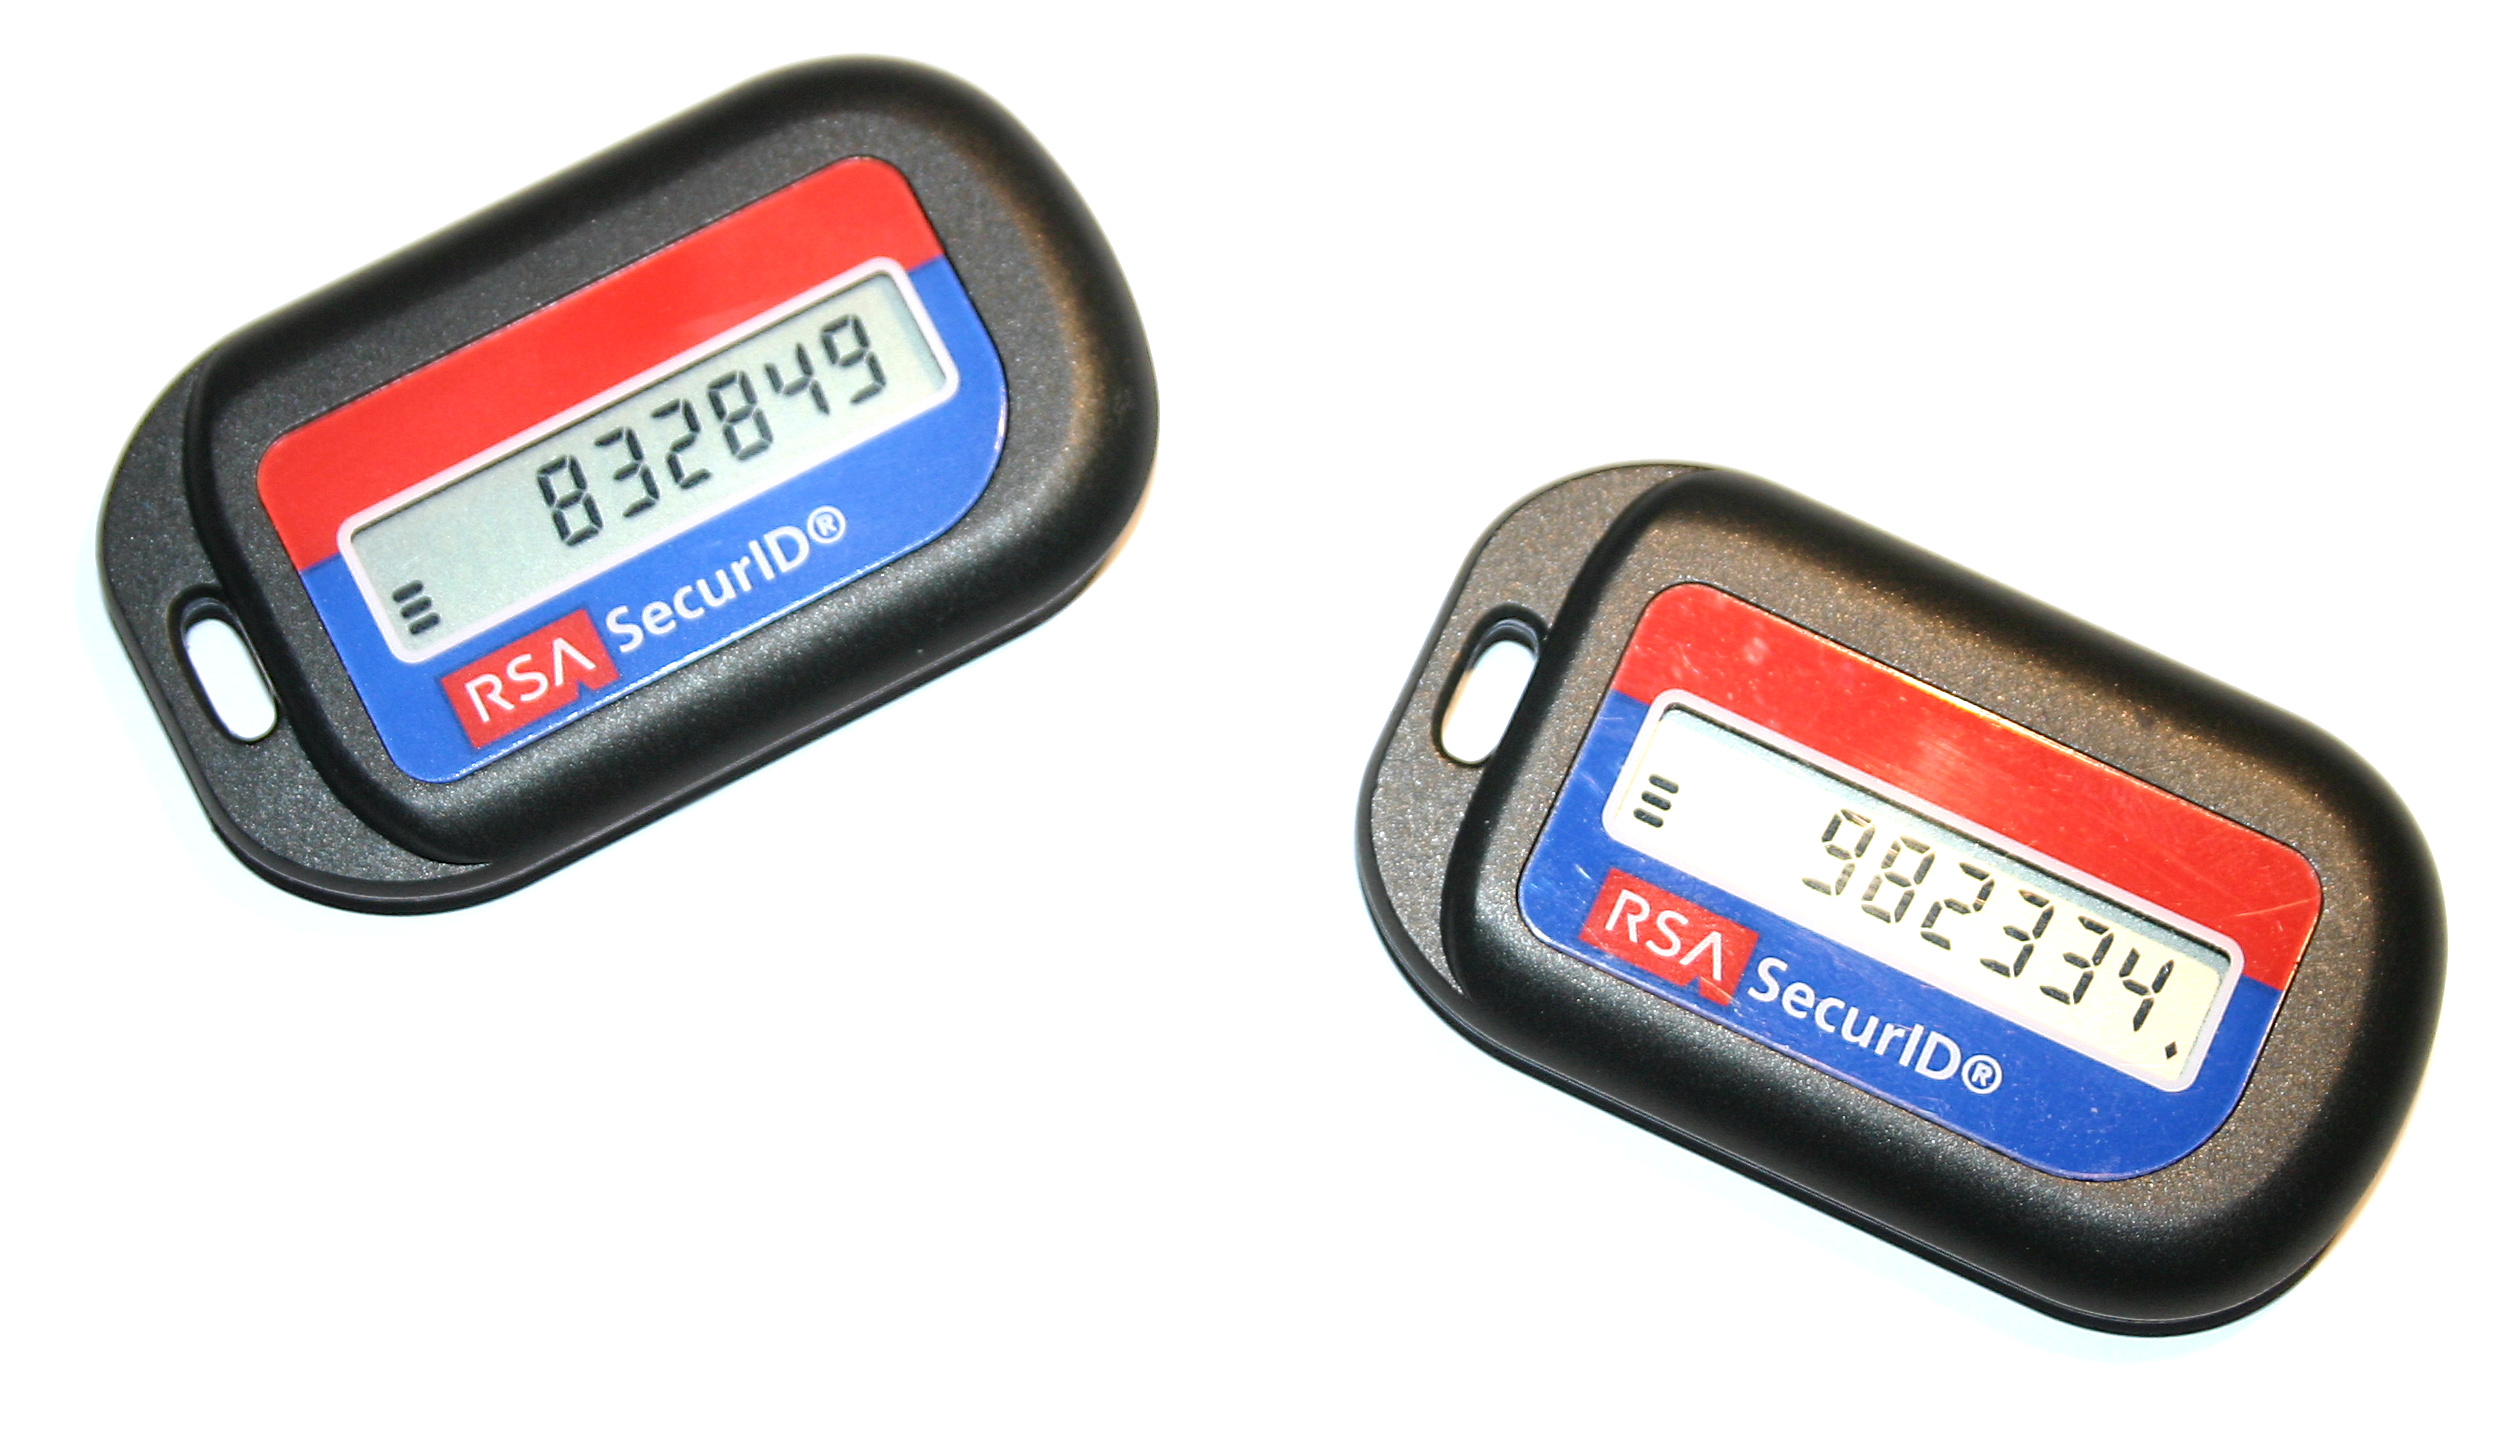 RSA SecurID Tokens (via Wikipedia)